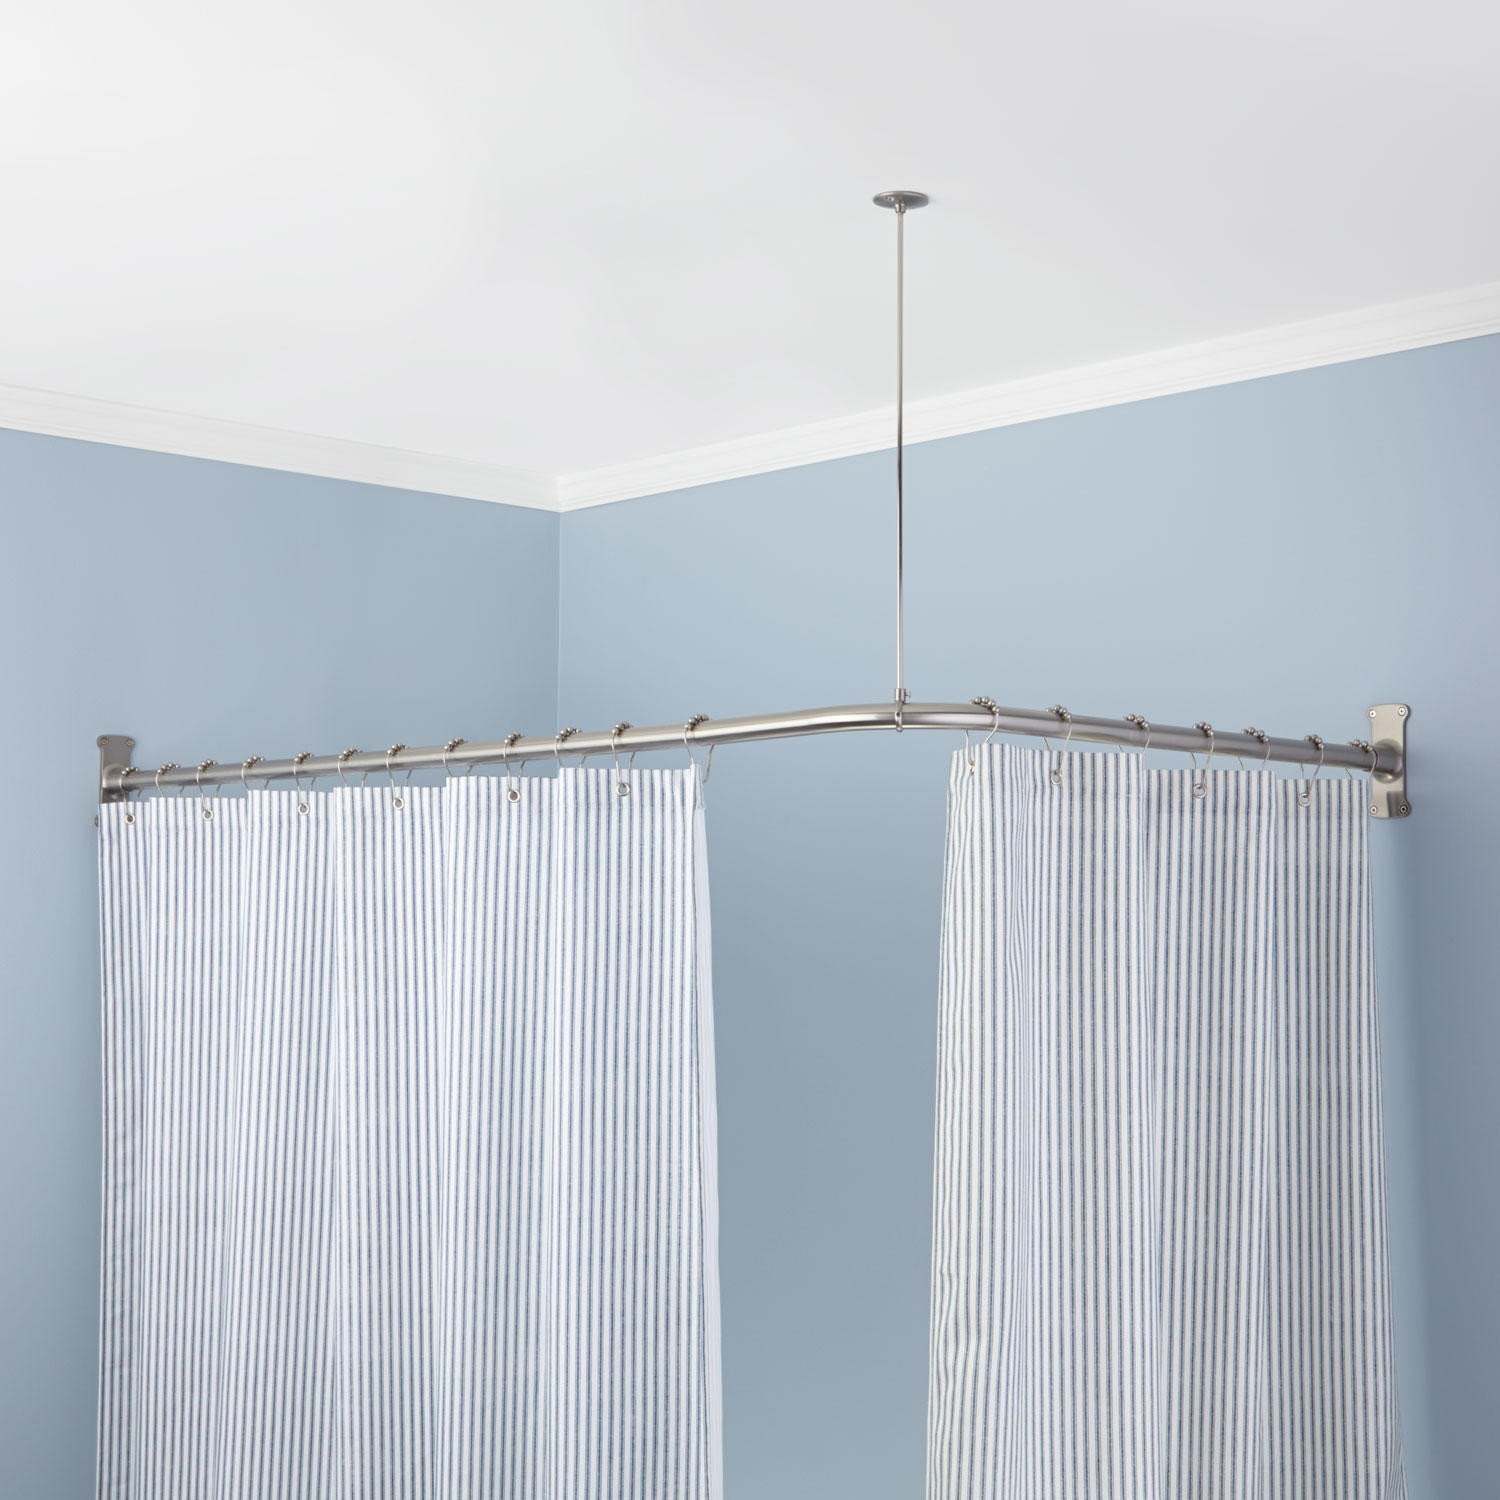 ideas extra expandable tension for rods curtain shower long stall rod pole exciting decor curved with bathroom